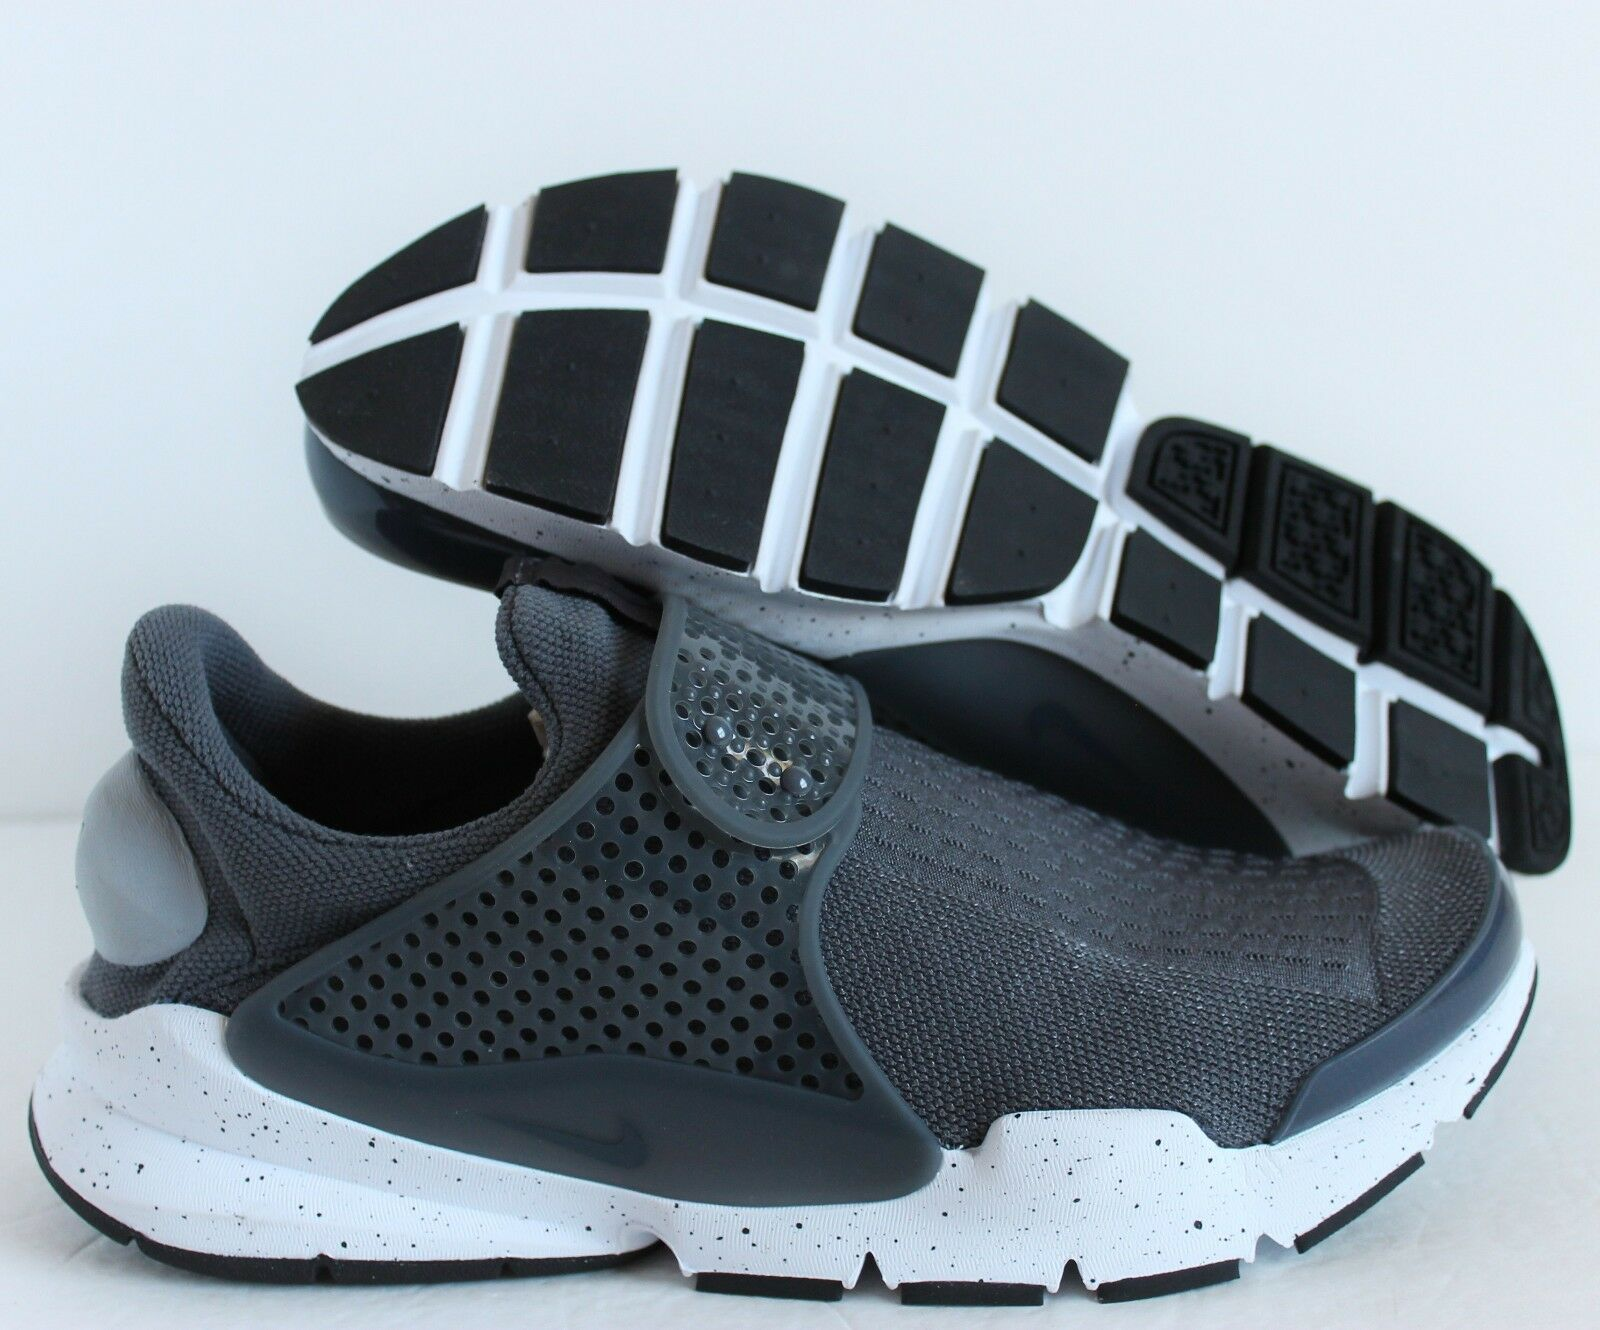 NIKE MEN SOCK DART WOLF GREY-WOLF GREY-WHITE SZ 10 [819686-003]